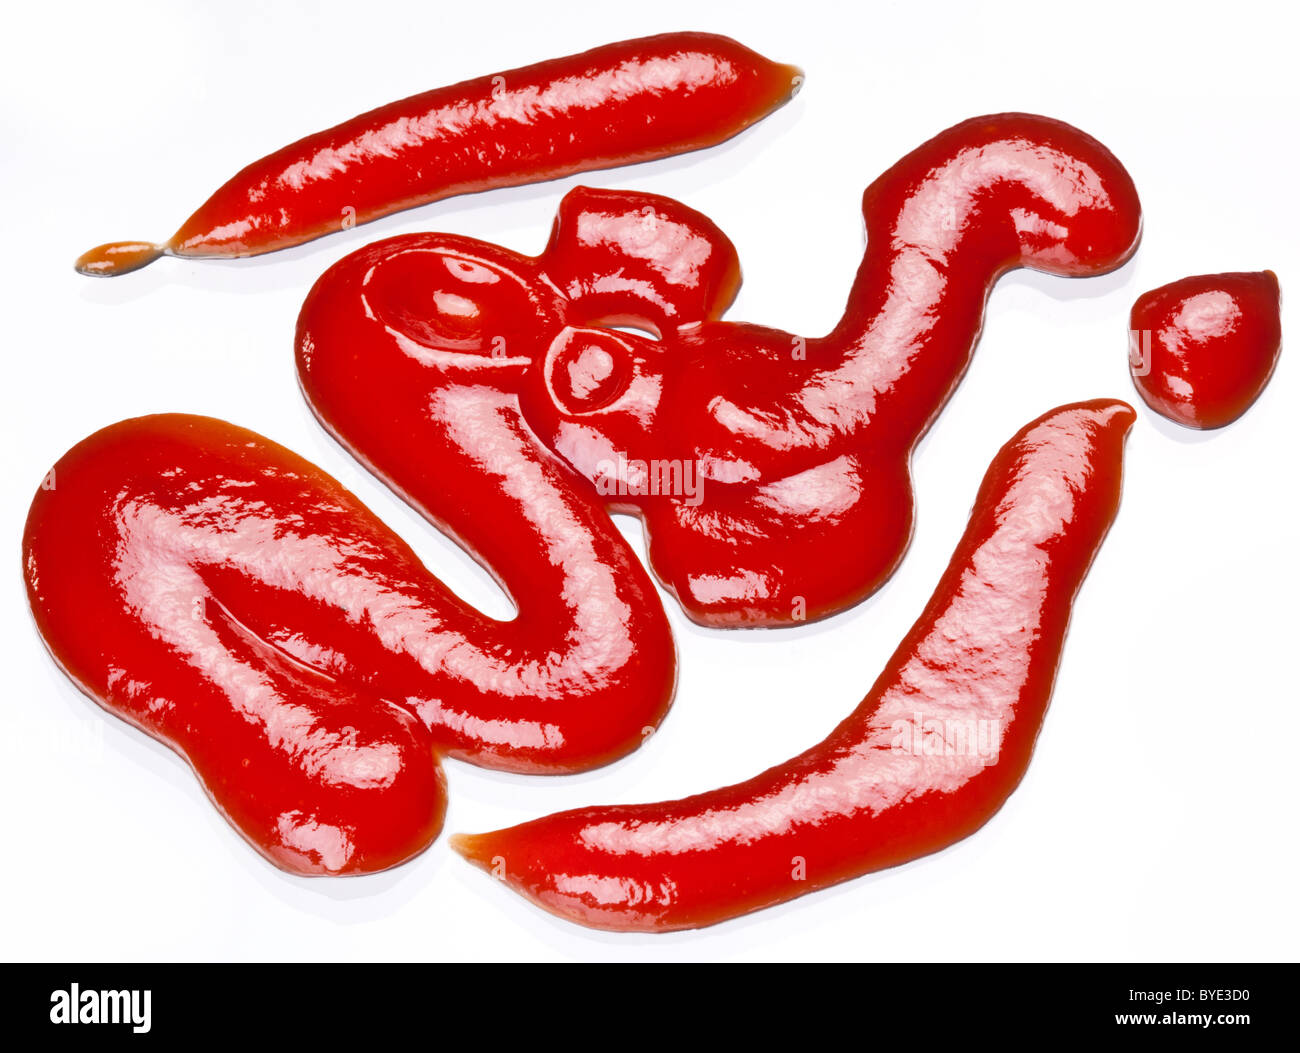 Portion of ketchup isolated on a white background. - Stock Image